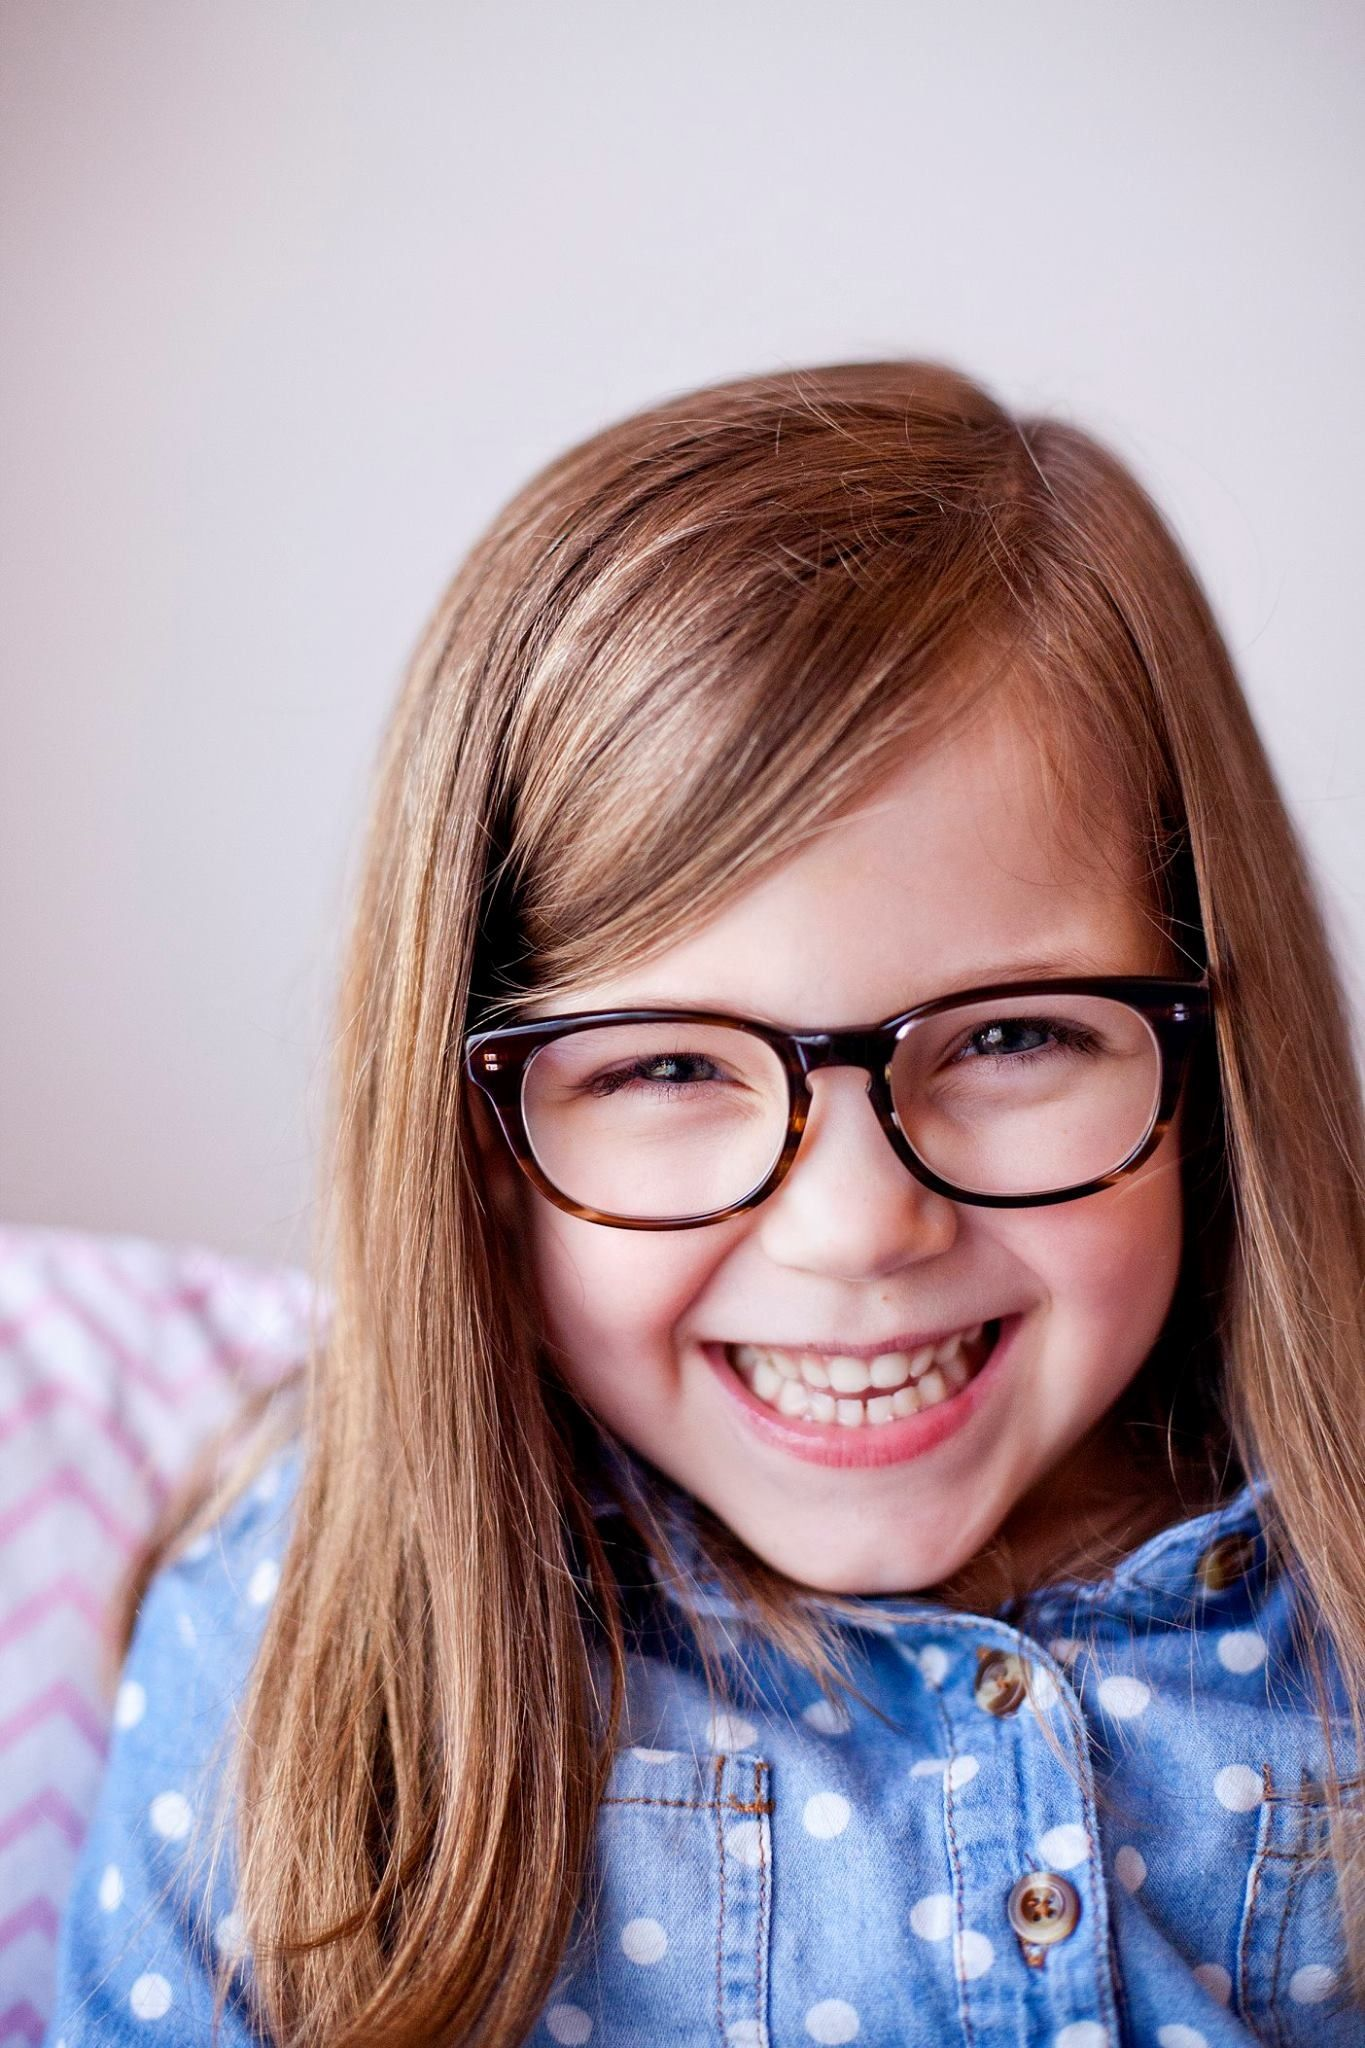 644cb4b896 Our Ruth round children s glasses frames are offered in several beautiful  colors. Limited edition styles are only around for a little while